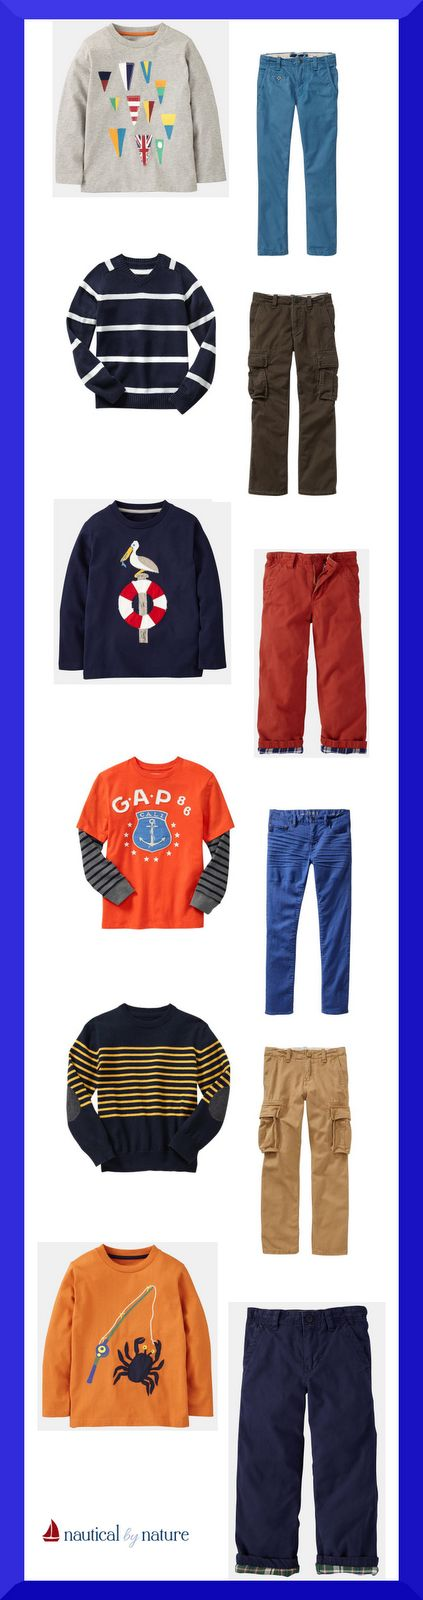 Back to school nautical outfits for boys (Mini Boden and Gap)